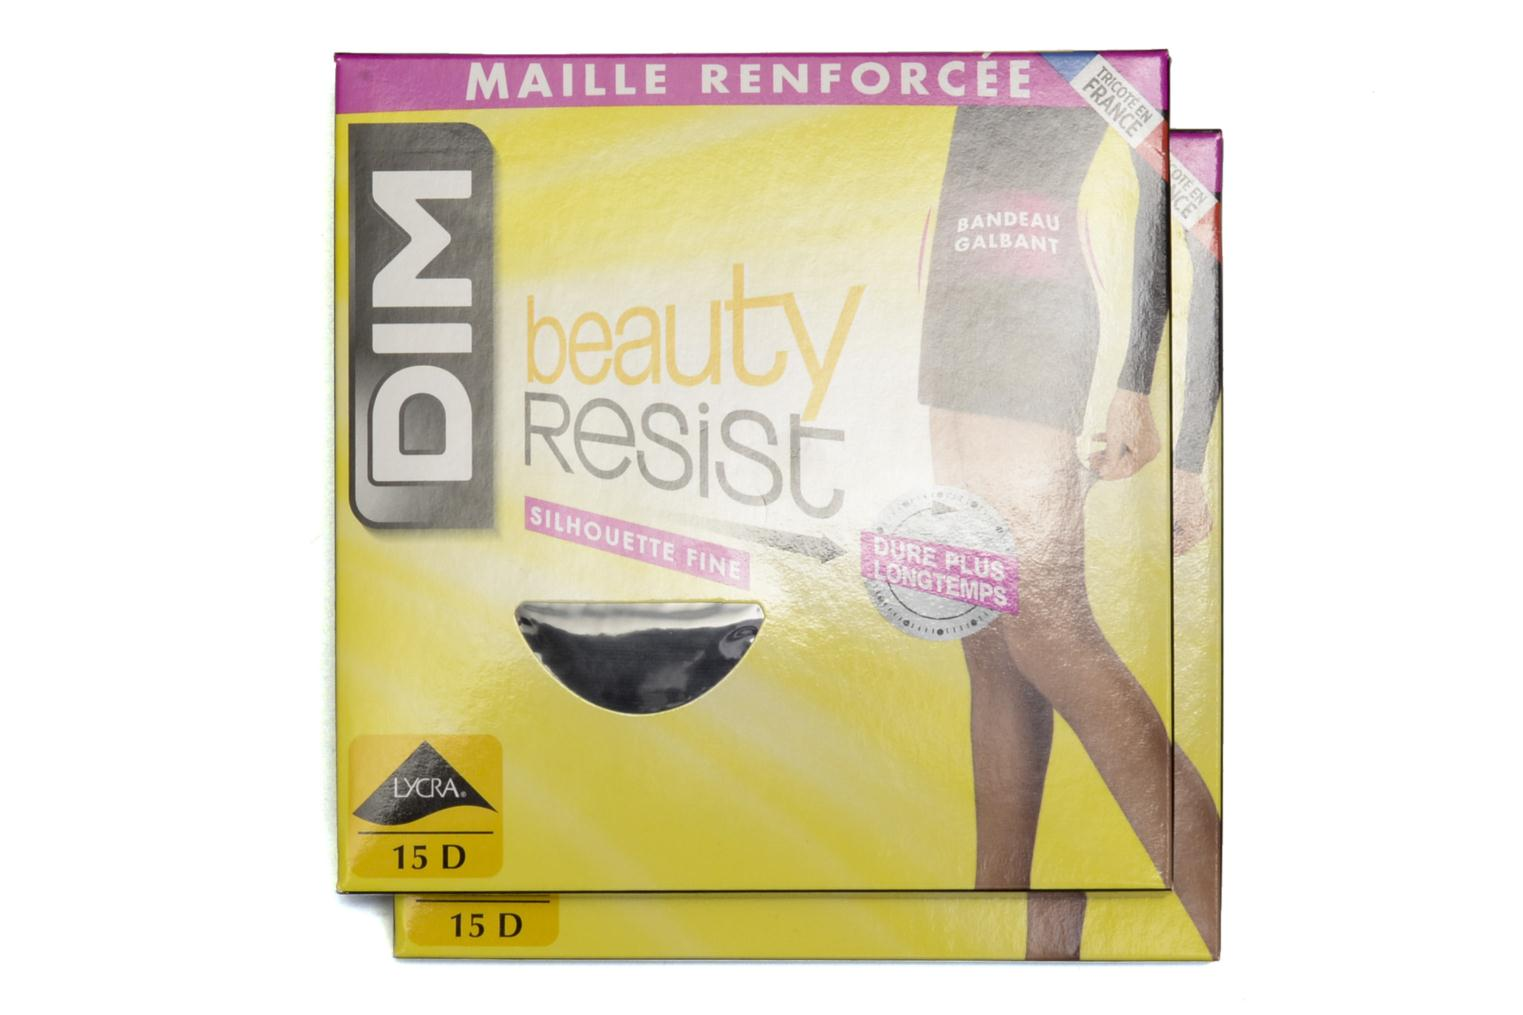 Tights BEAUTY RESIST SILHOUETTE FINE Pack of 2  Noir